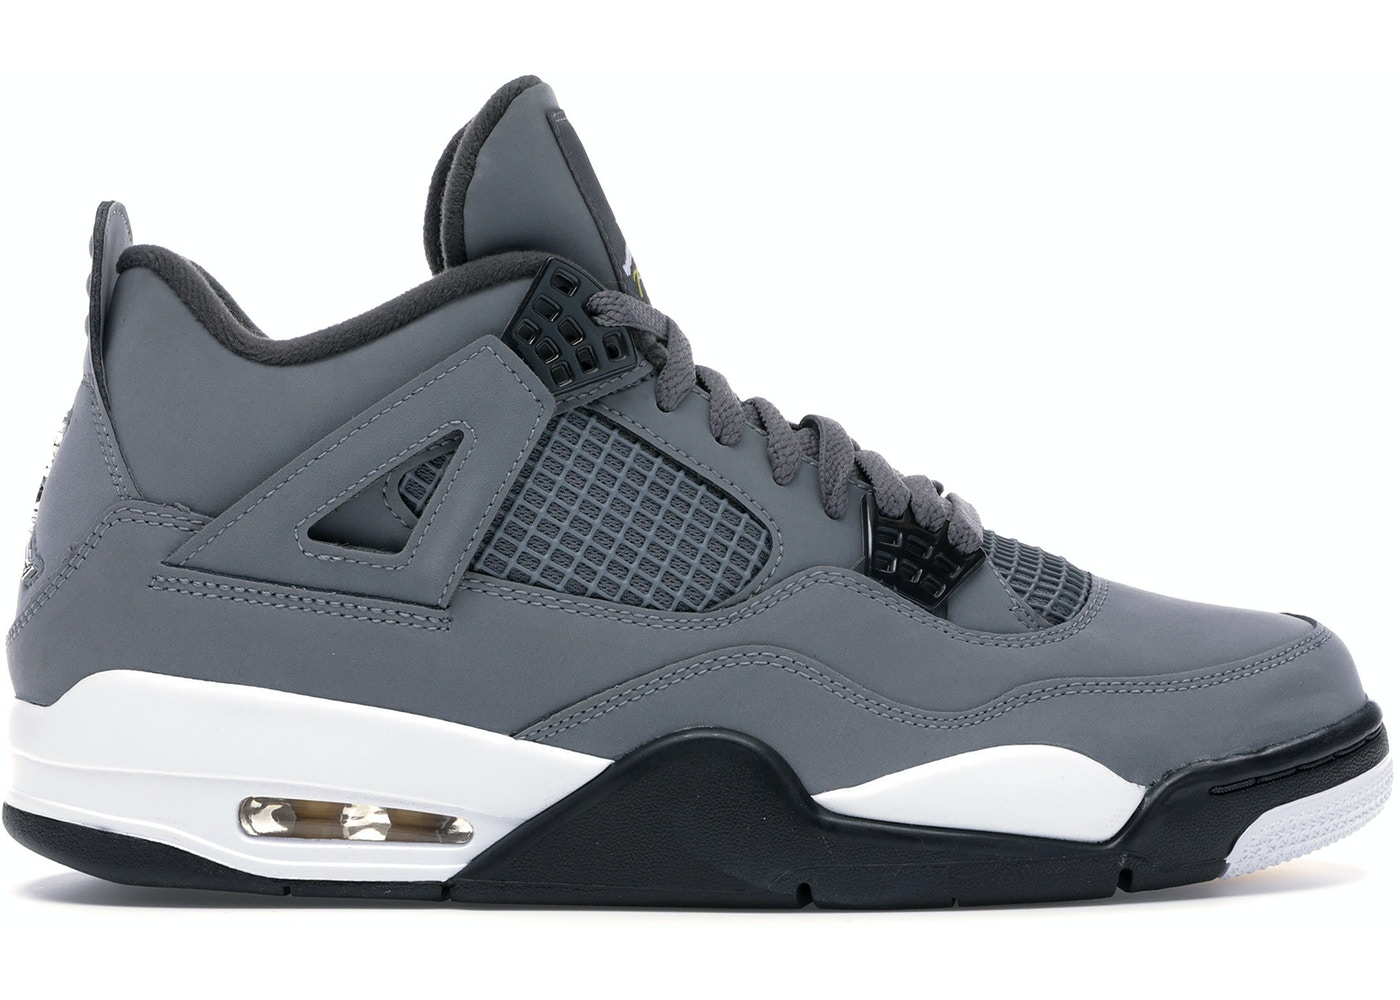 a74bac97e88 Jordan 4 Retro Cool Grey (2019)